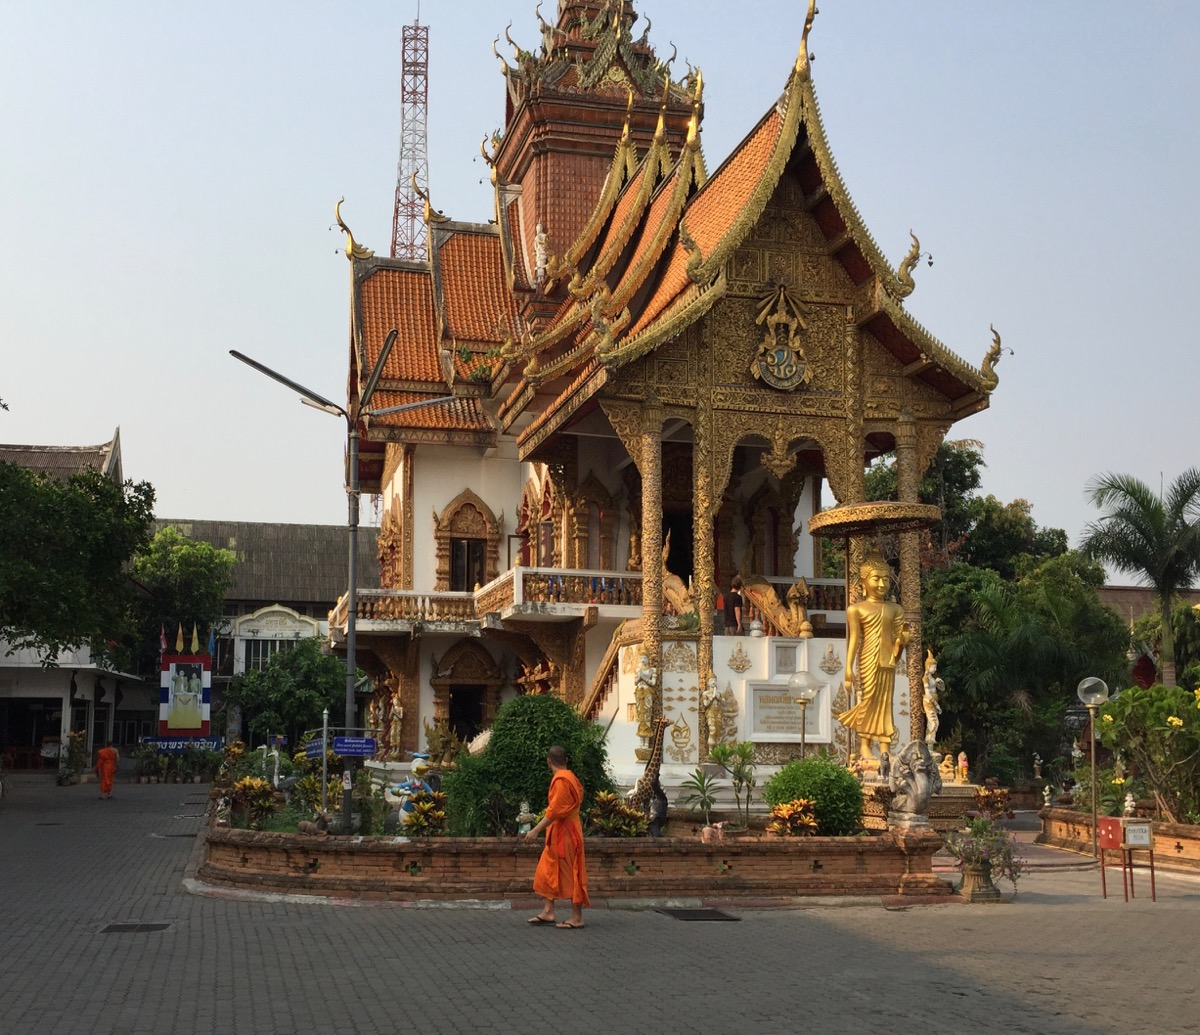 Priest & temple in Chiang Mai